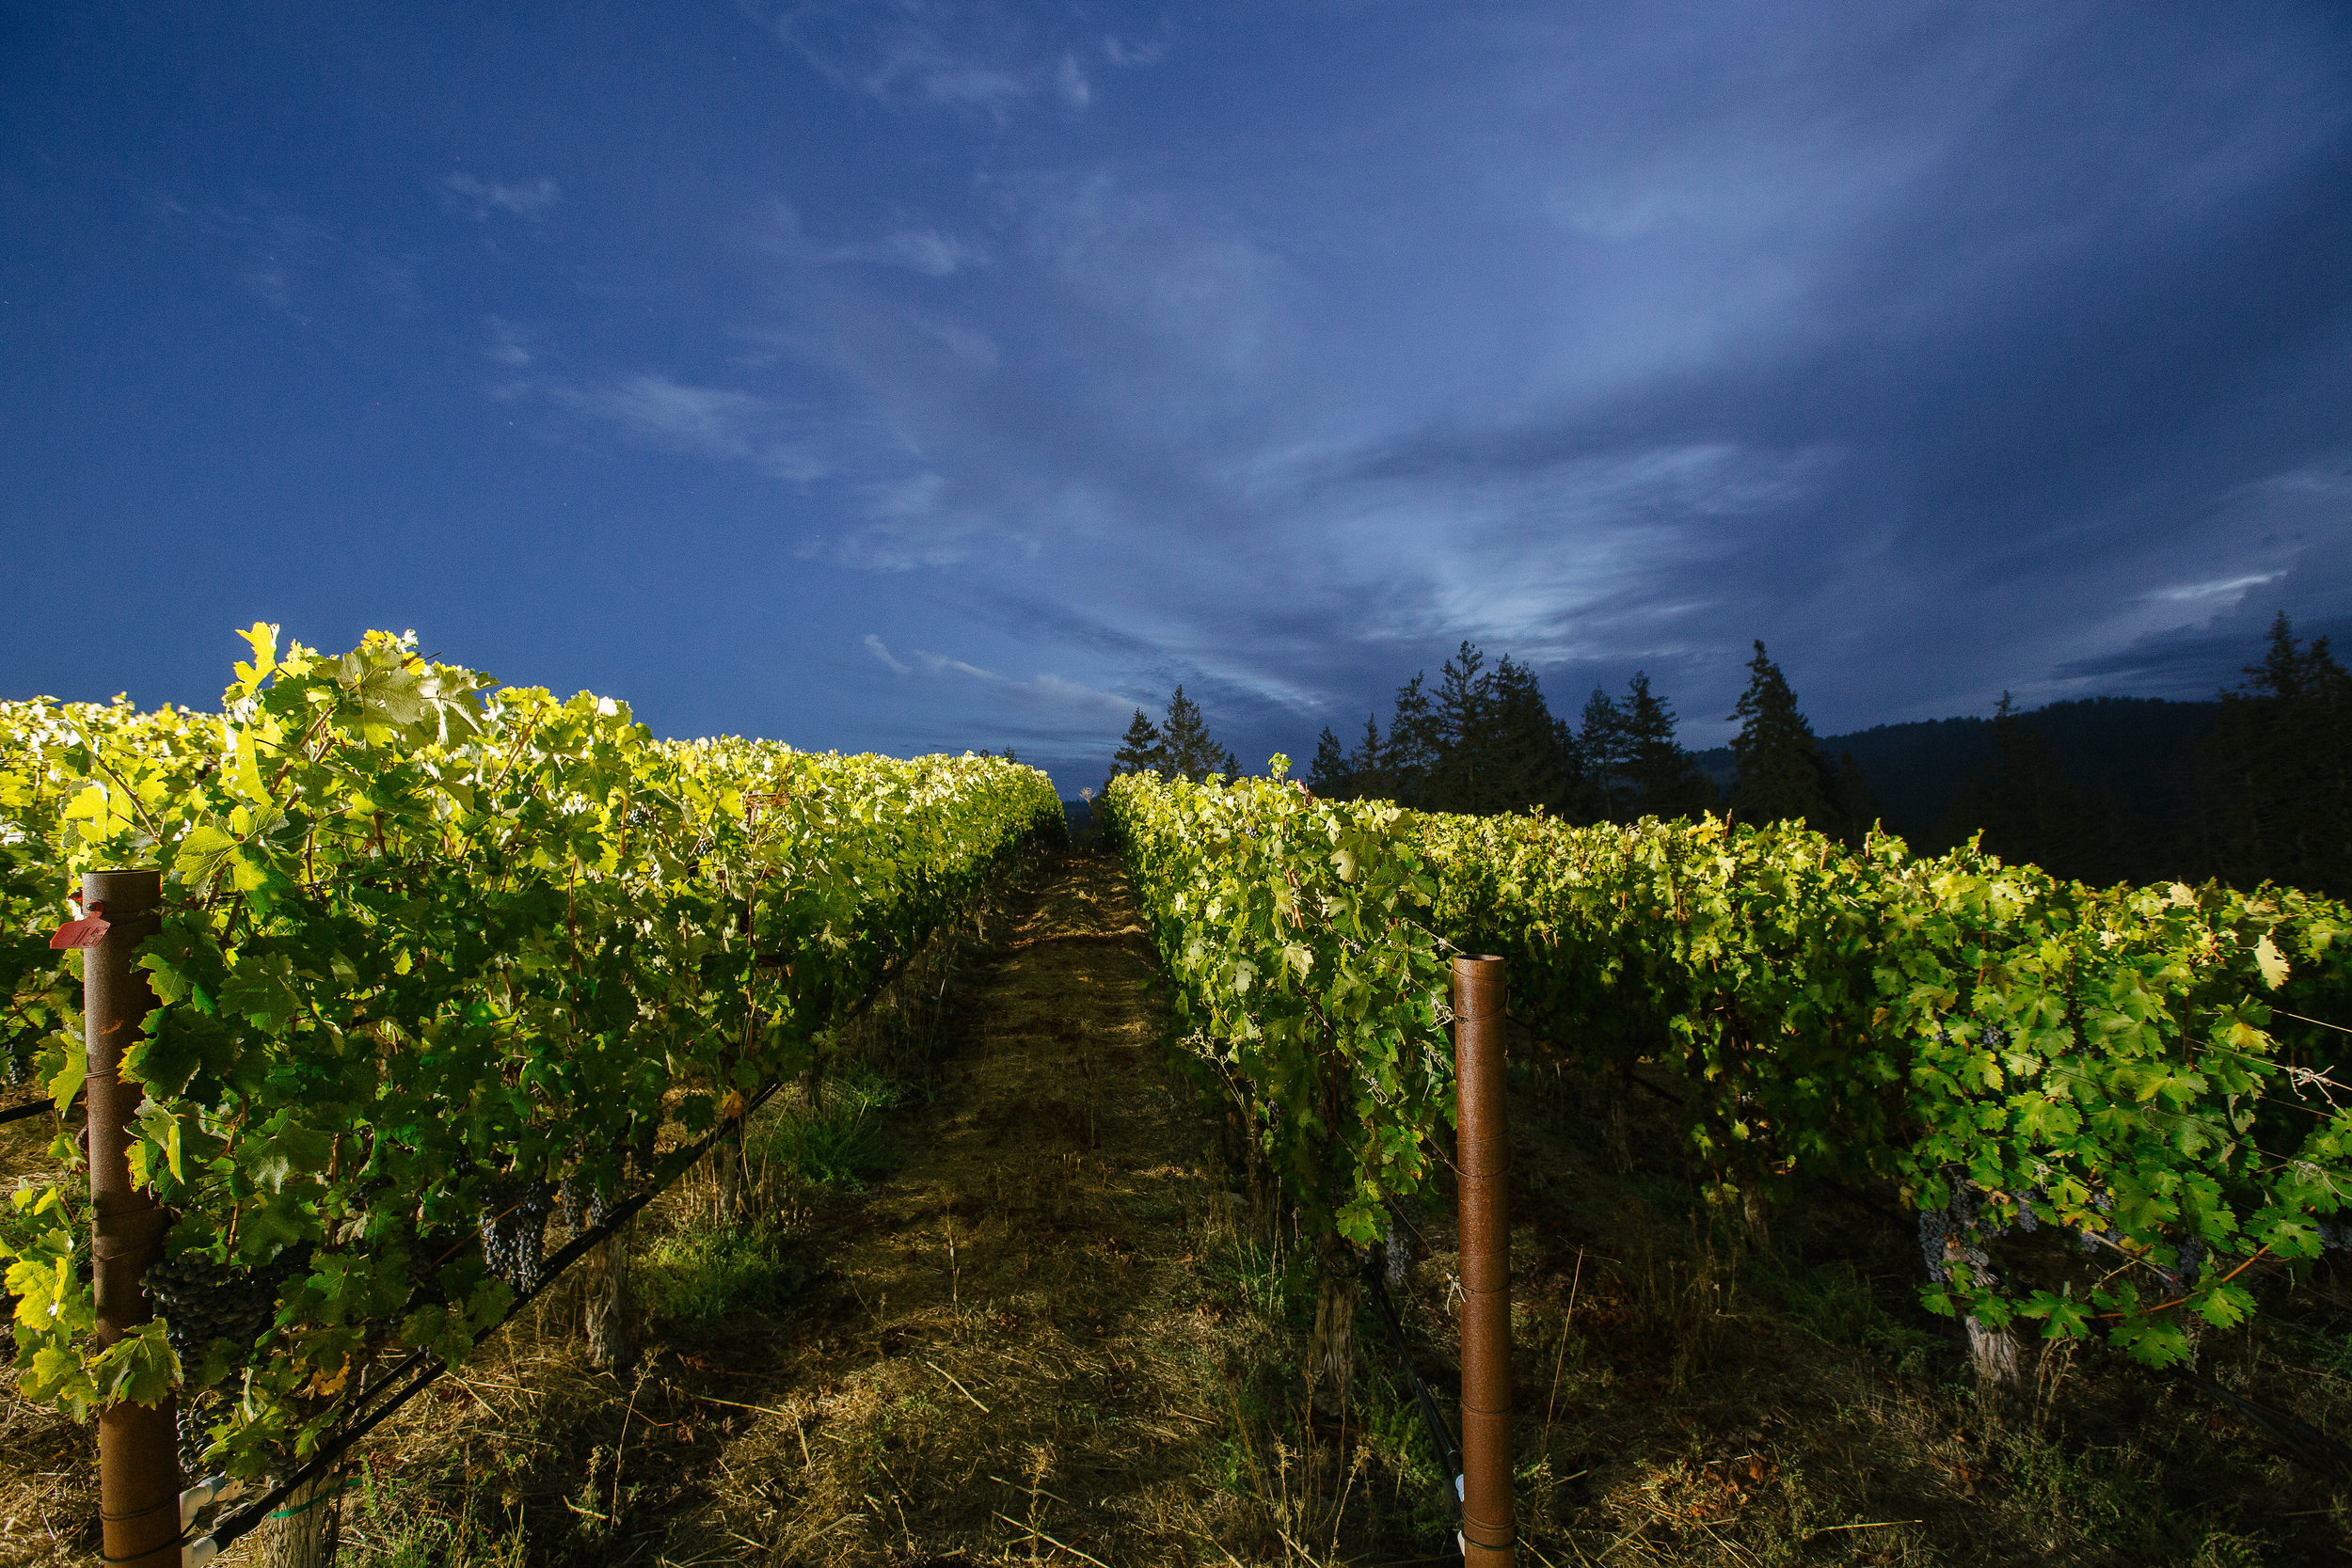 Night-harvest-ProfileEstateVineyard.jpg